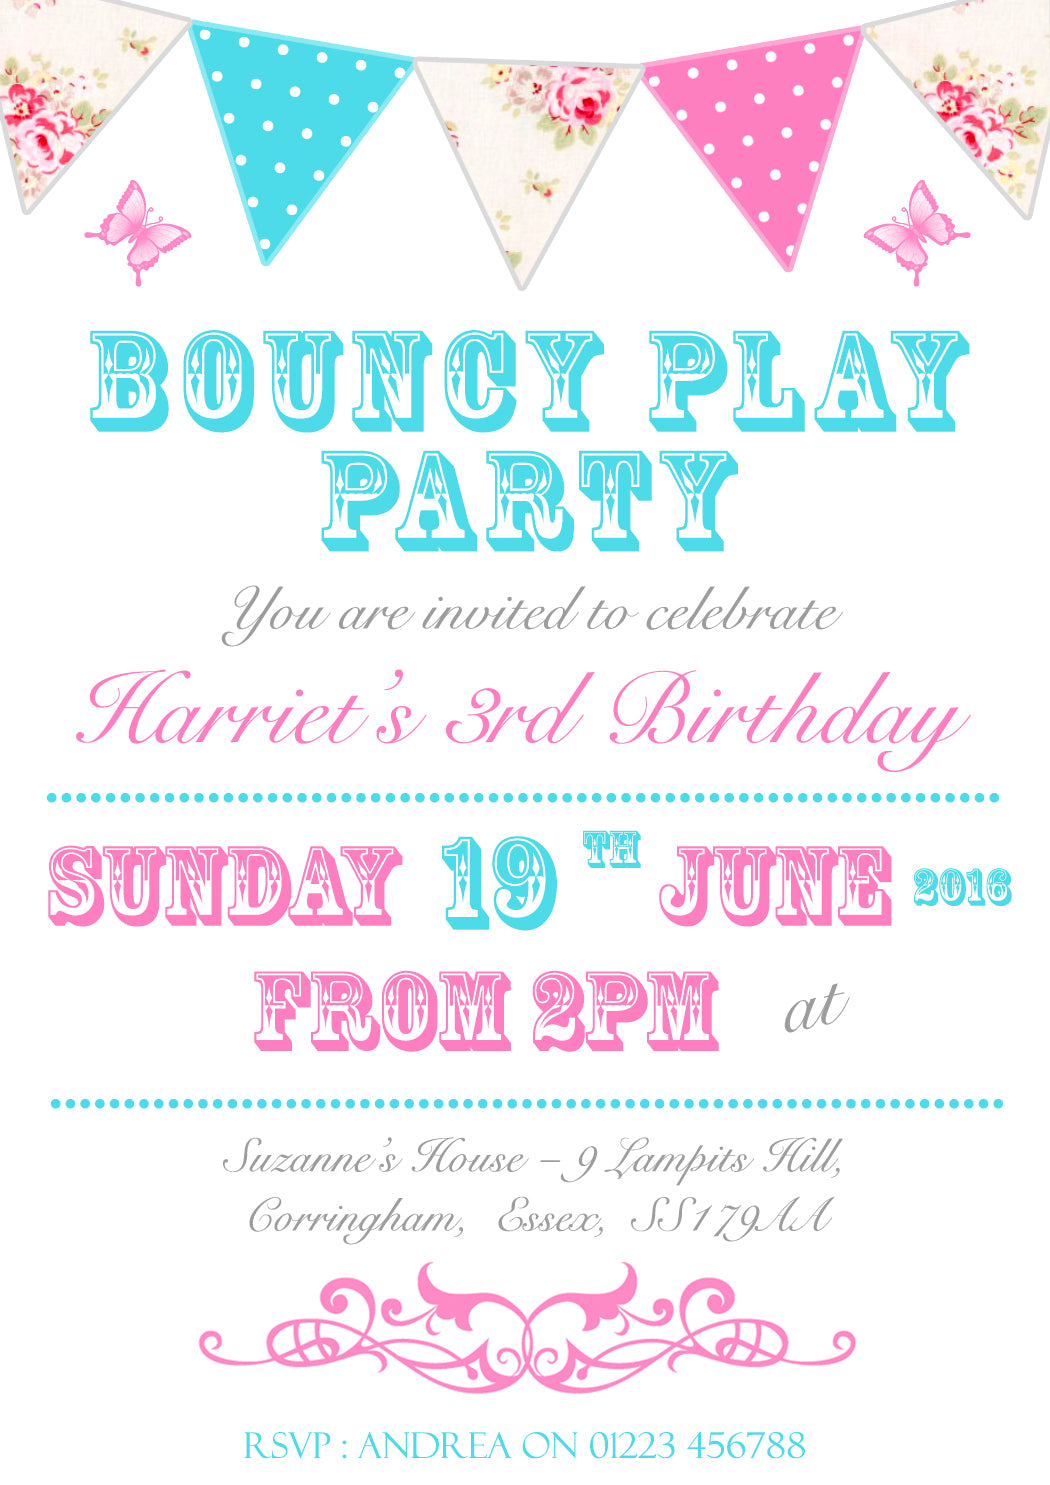 Shabby Chic Afternoon Tea Party Invitations - Boys Girls Joint ...